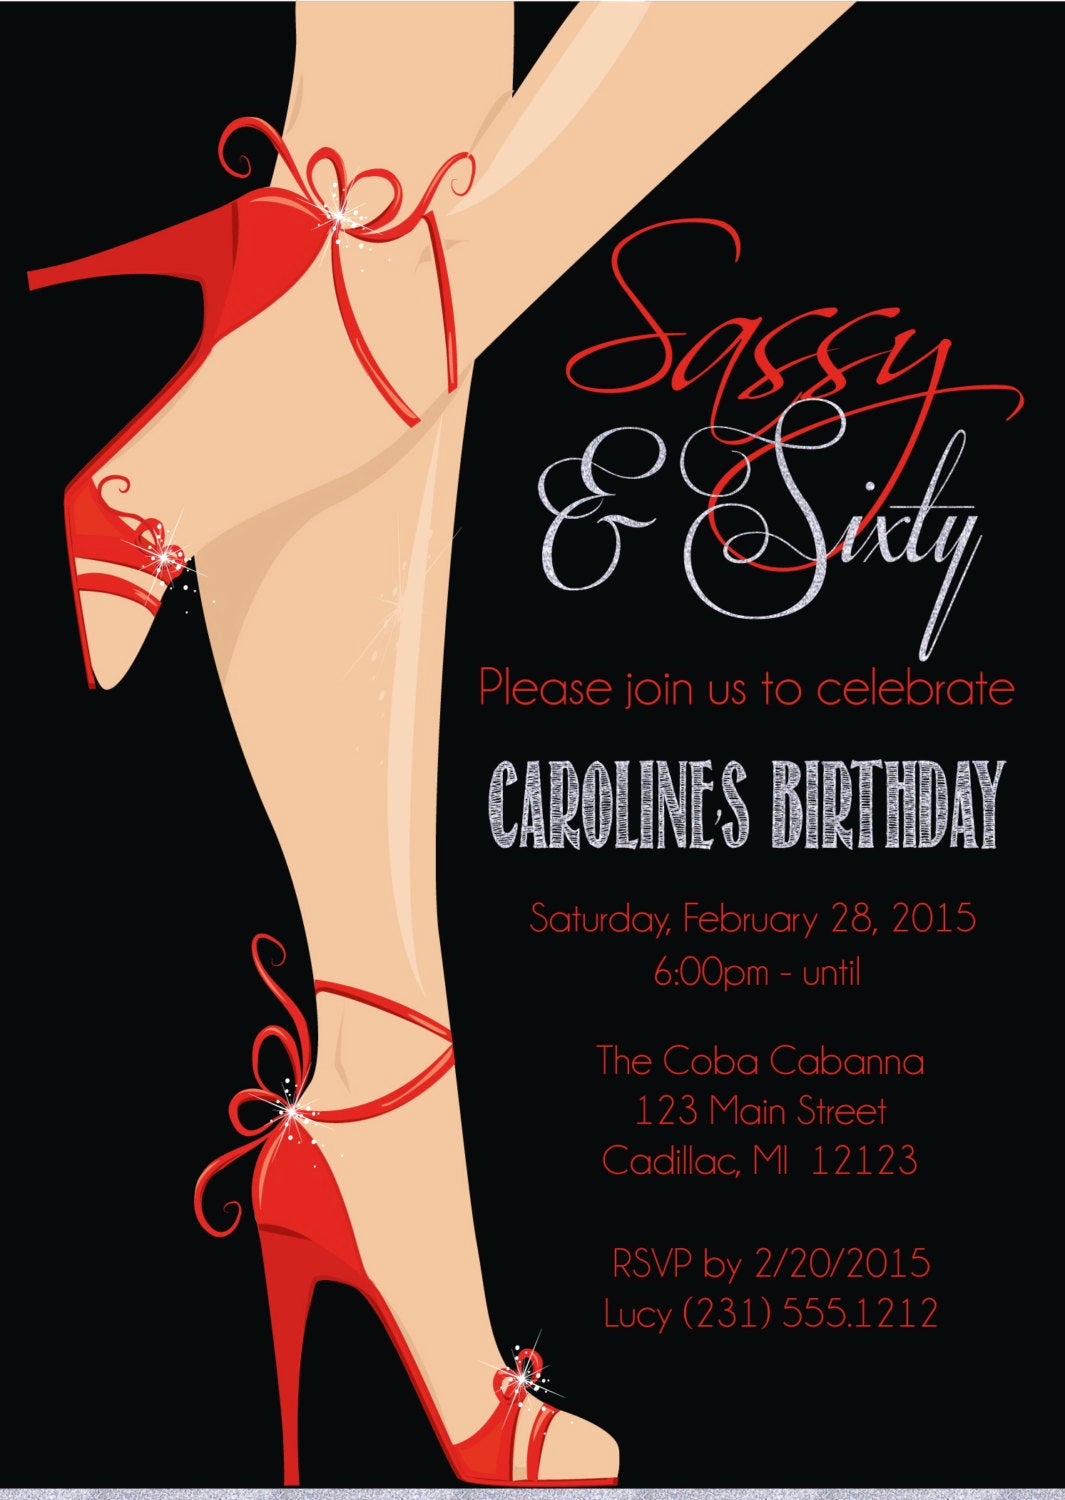 60th Birthday Invitation Wording Awesome Red Shoe 60th Birthday Invitation Women S Sassy & Sixty